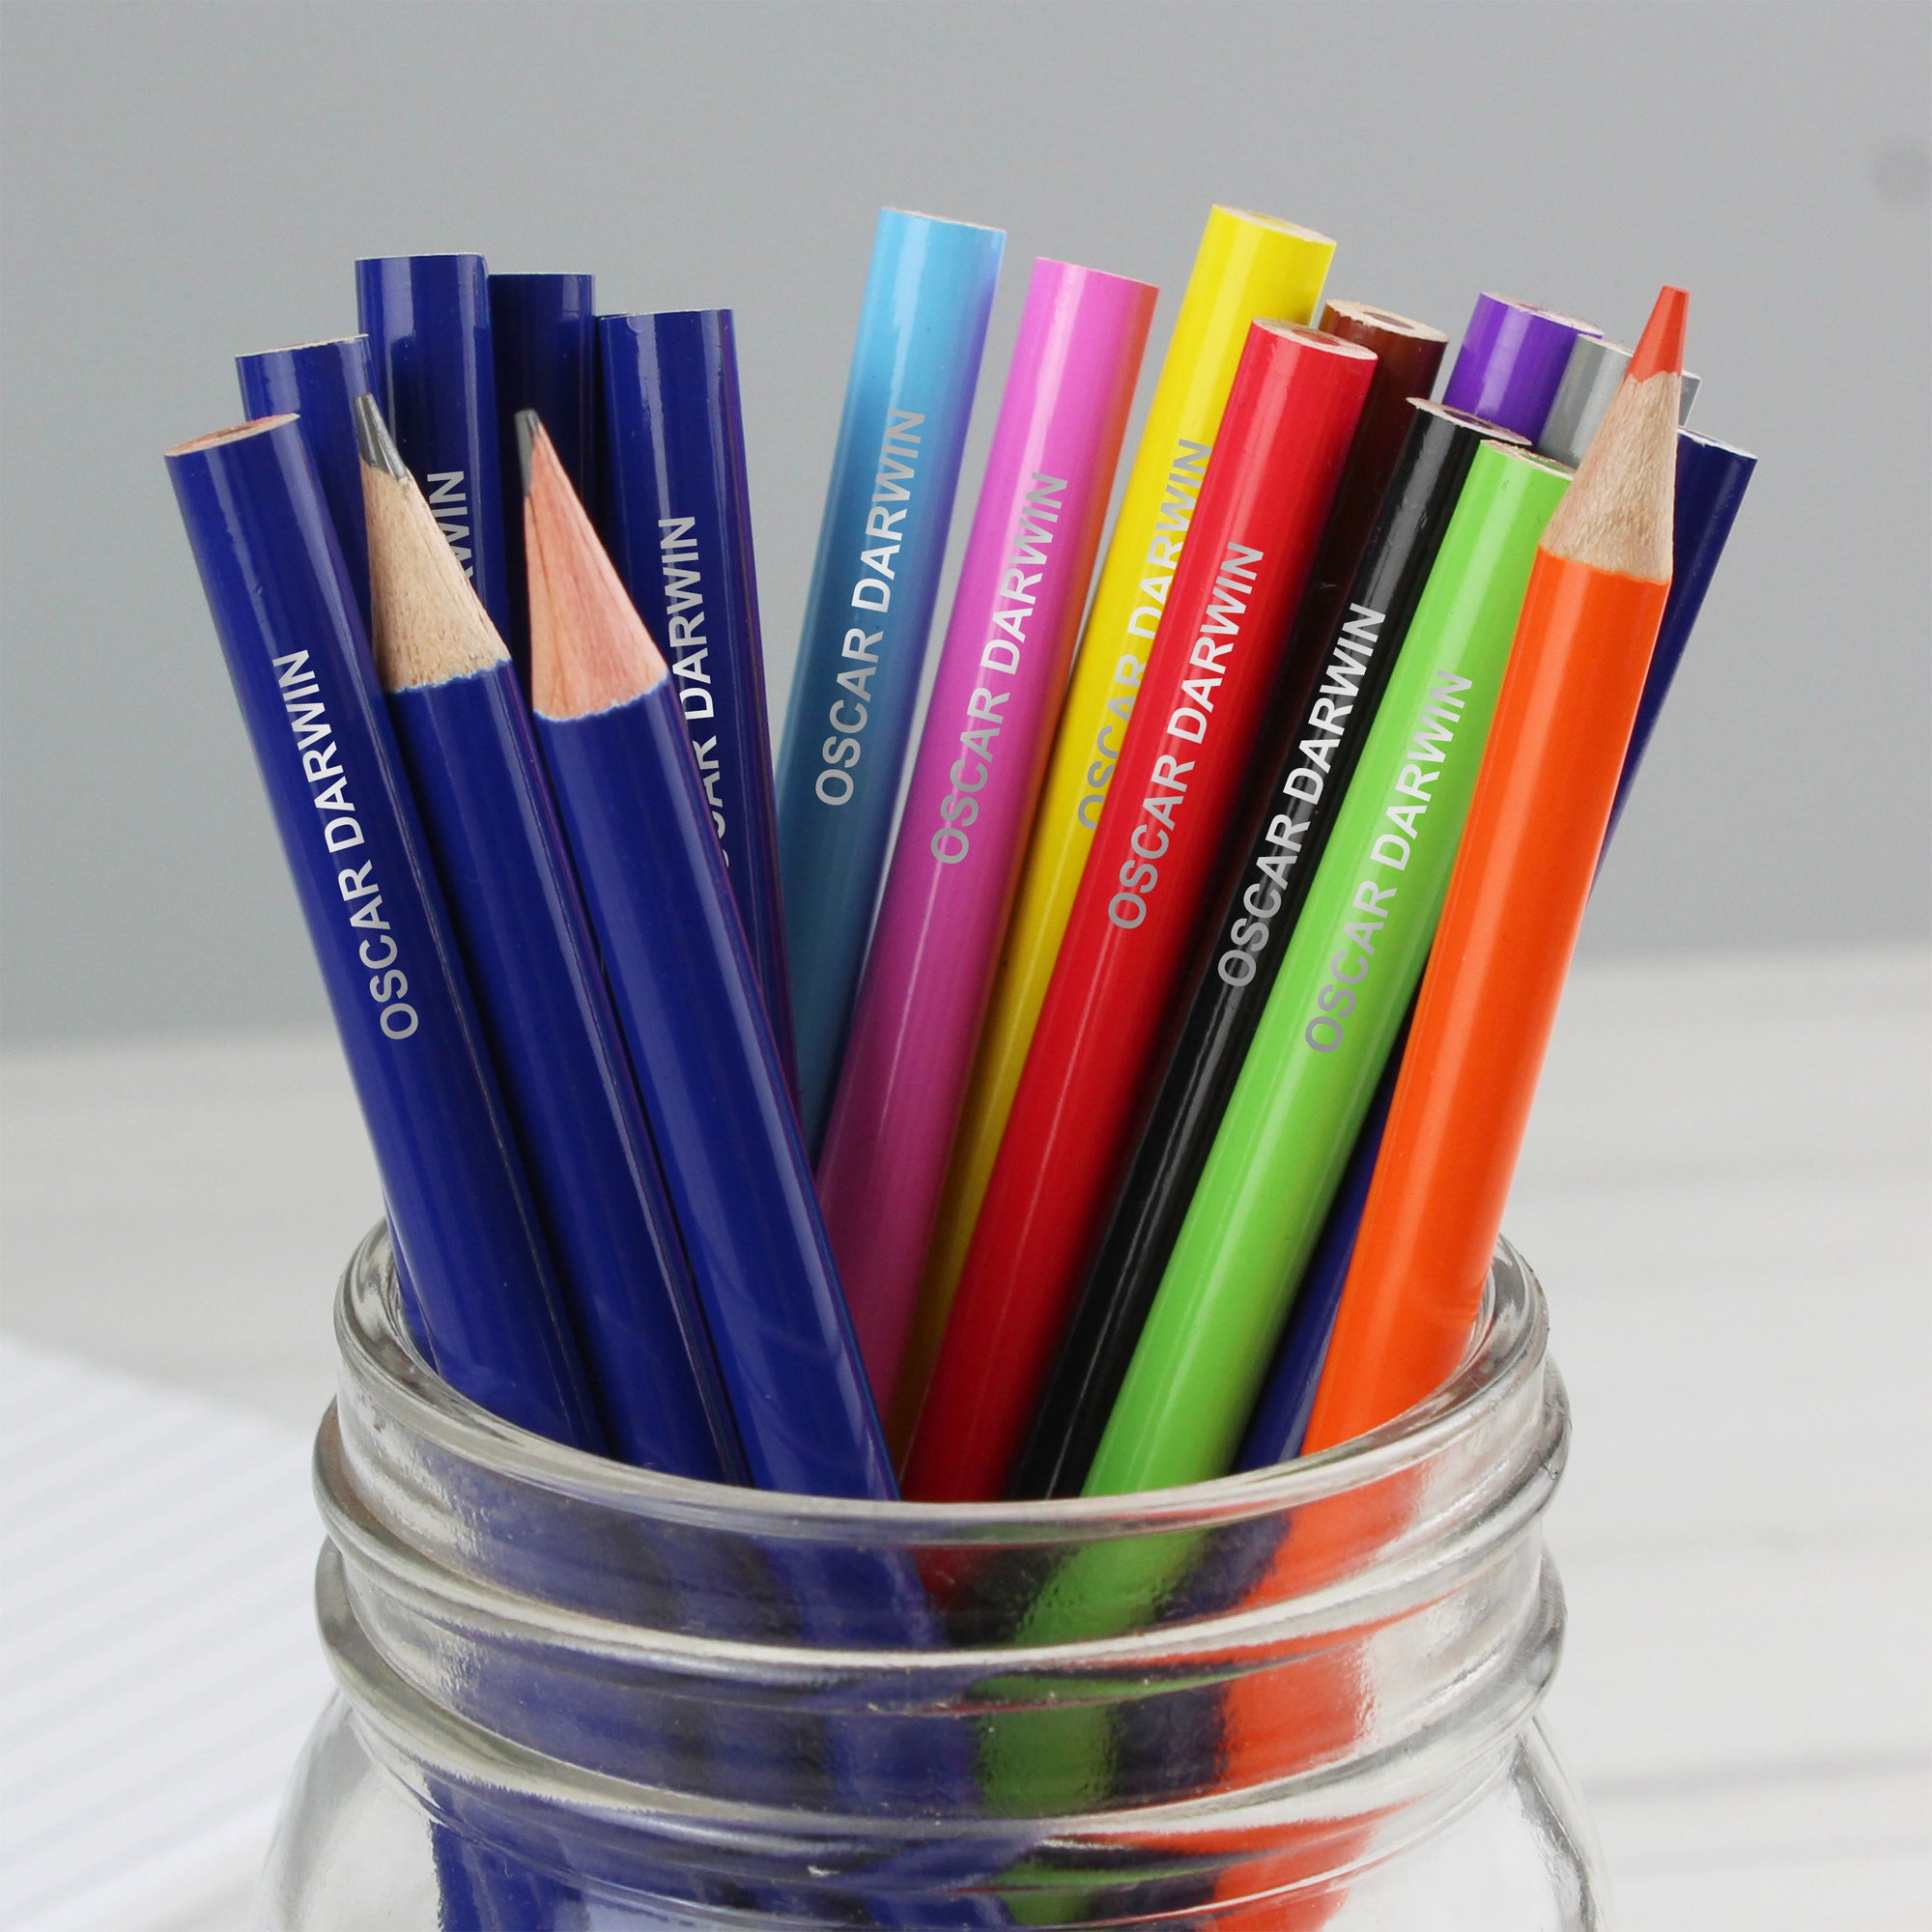 Pack of 20 personalised pencils, 12 are colouring pencils and 8 are HB. The name will be printed onto them in uppercase.